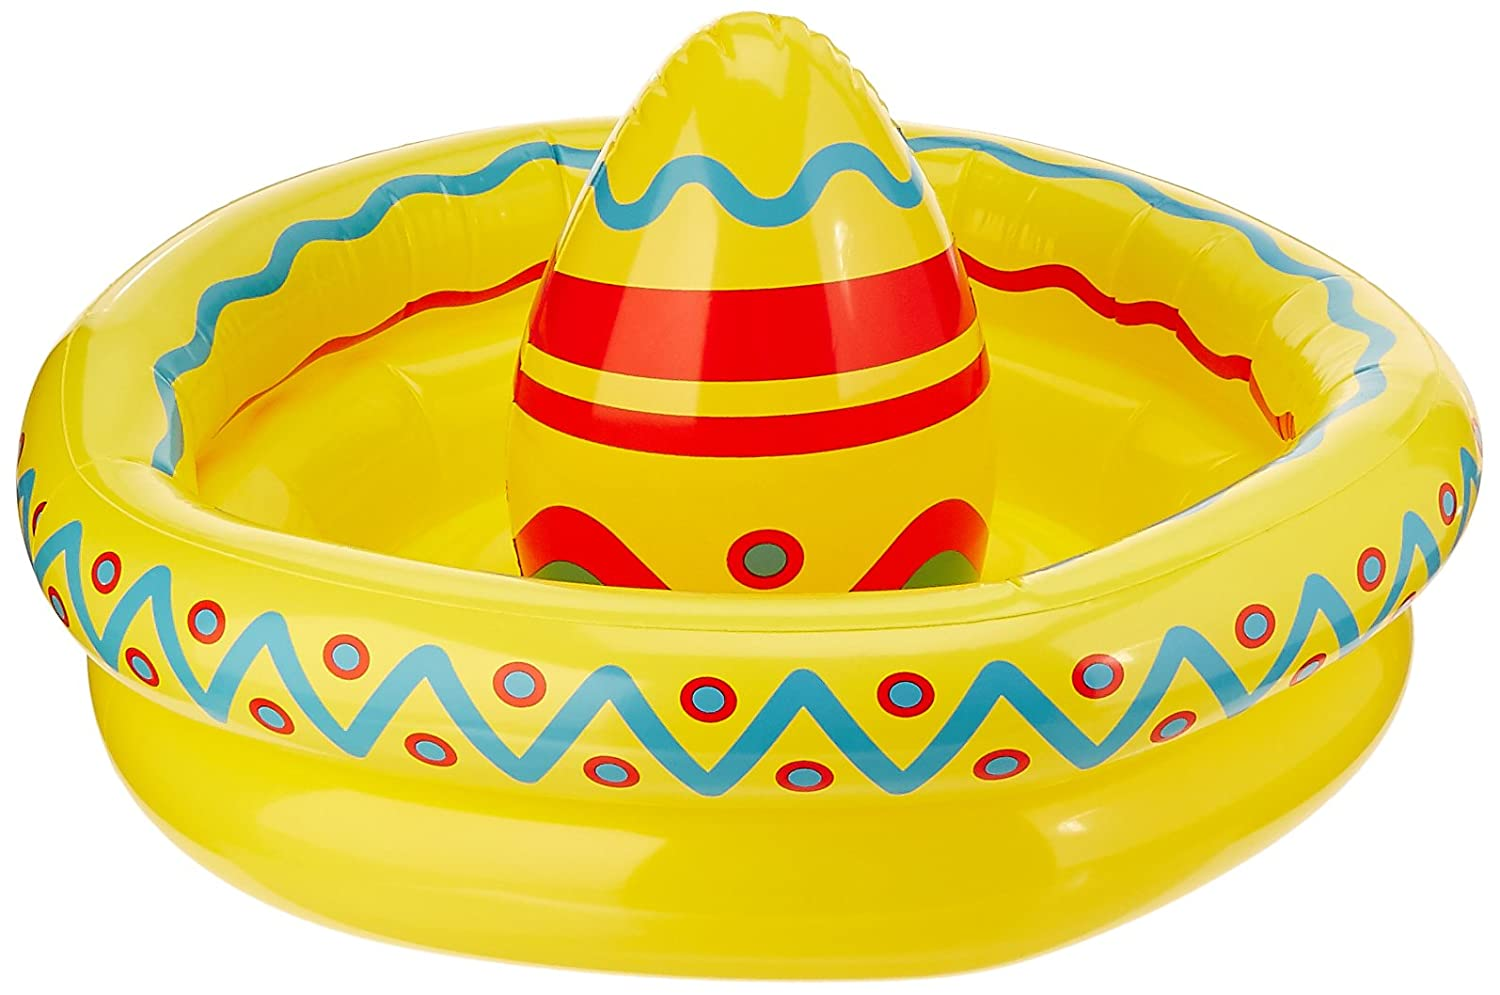 Beistle 50254 inflatable Sombrero Cooler, 18 by 12-Inch The Beistle Company